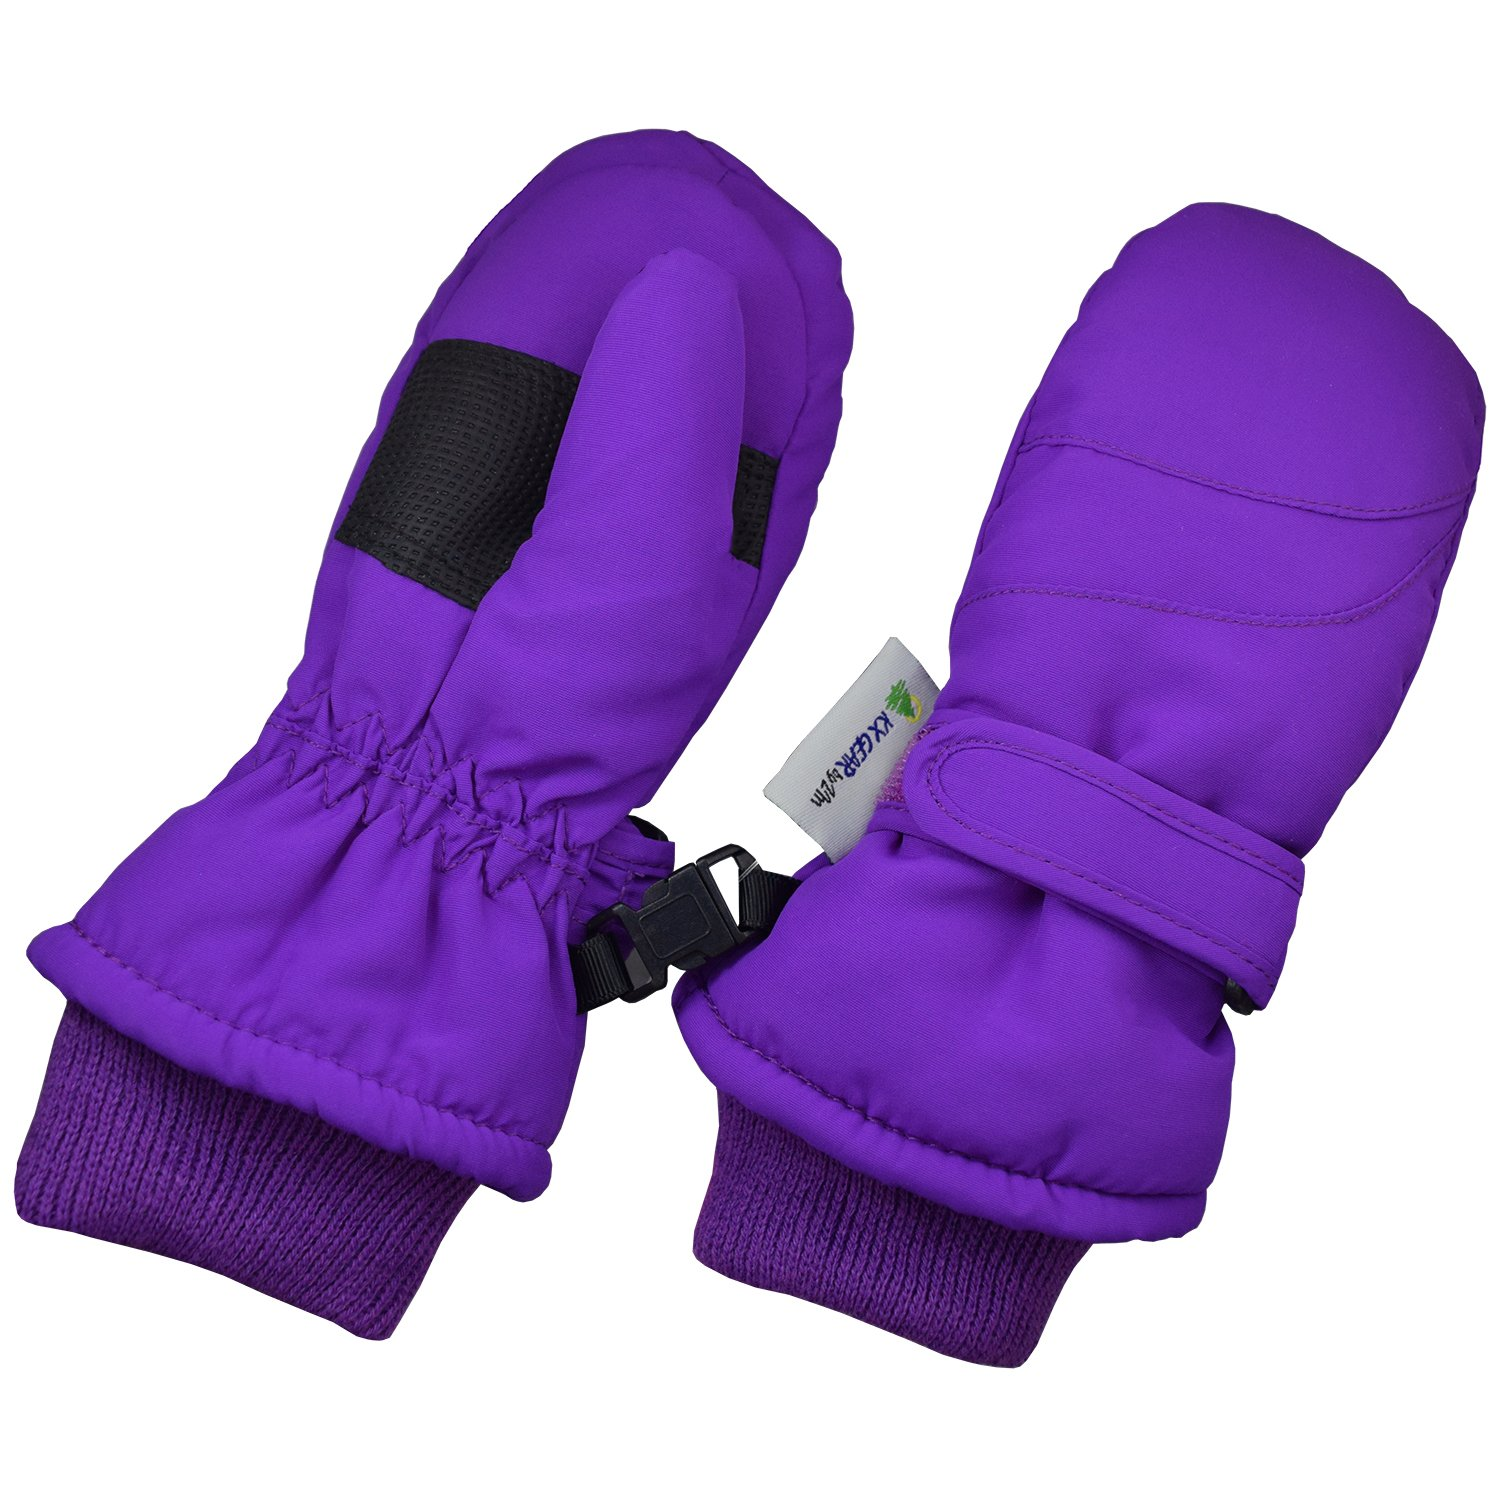 Winter Waterproof Gloves Children Toddlers and Baby Mittens Made With Thinsulate,and Fleece KX GEAR by Zelda Matilda